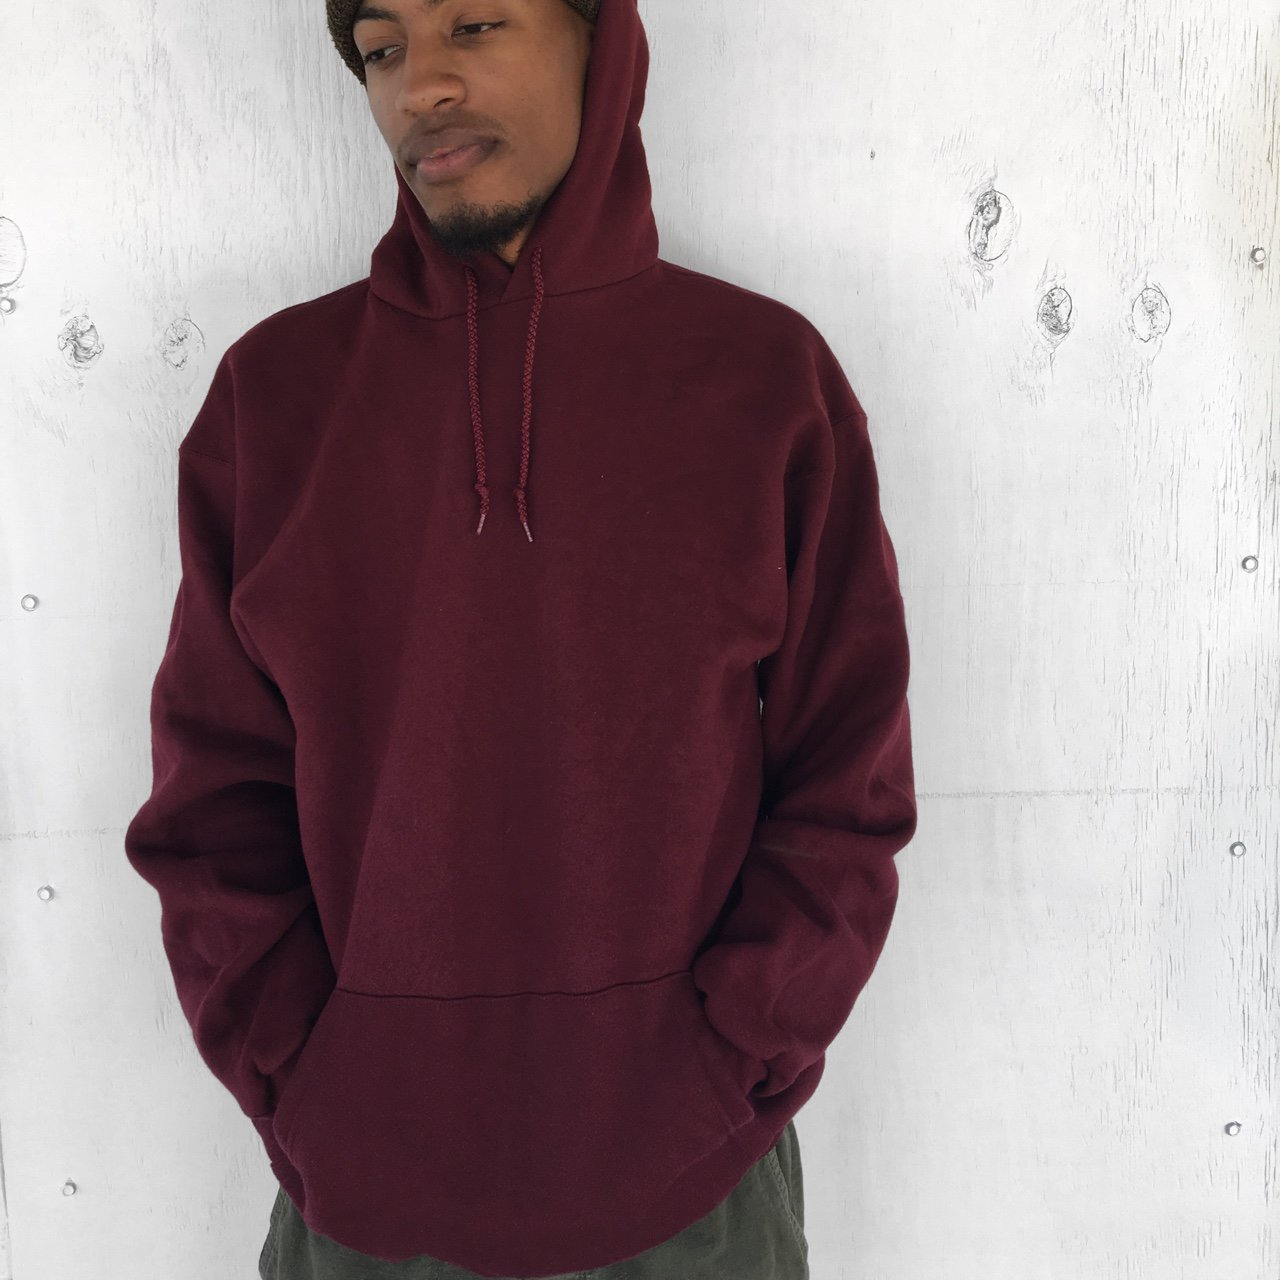 04dc3fab70 Thick Burgundy Hoodie Perfect for the cold weather SALES - Depop